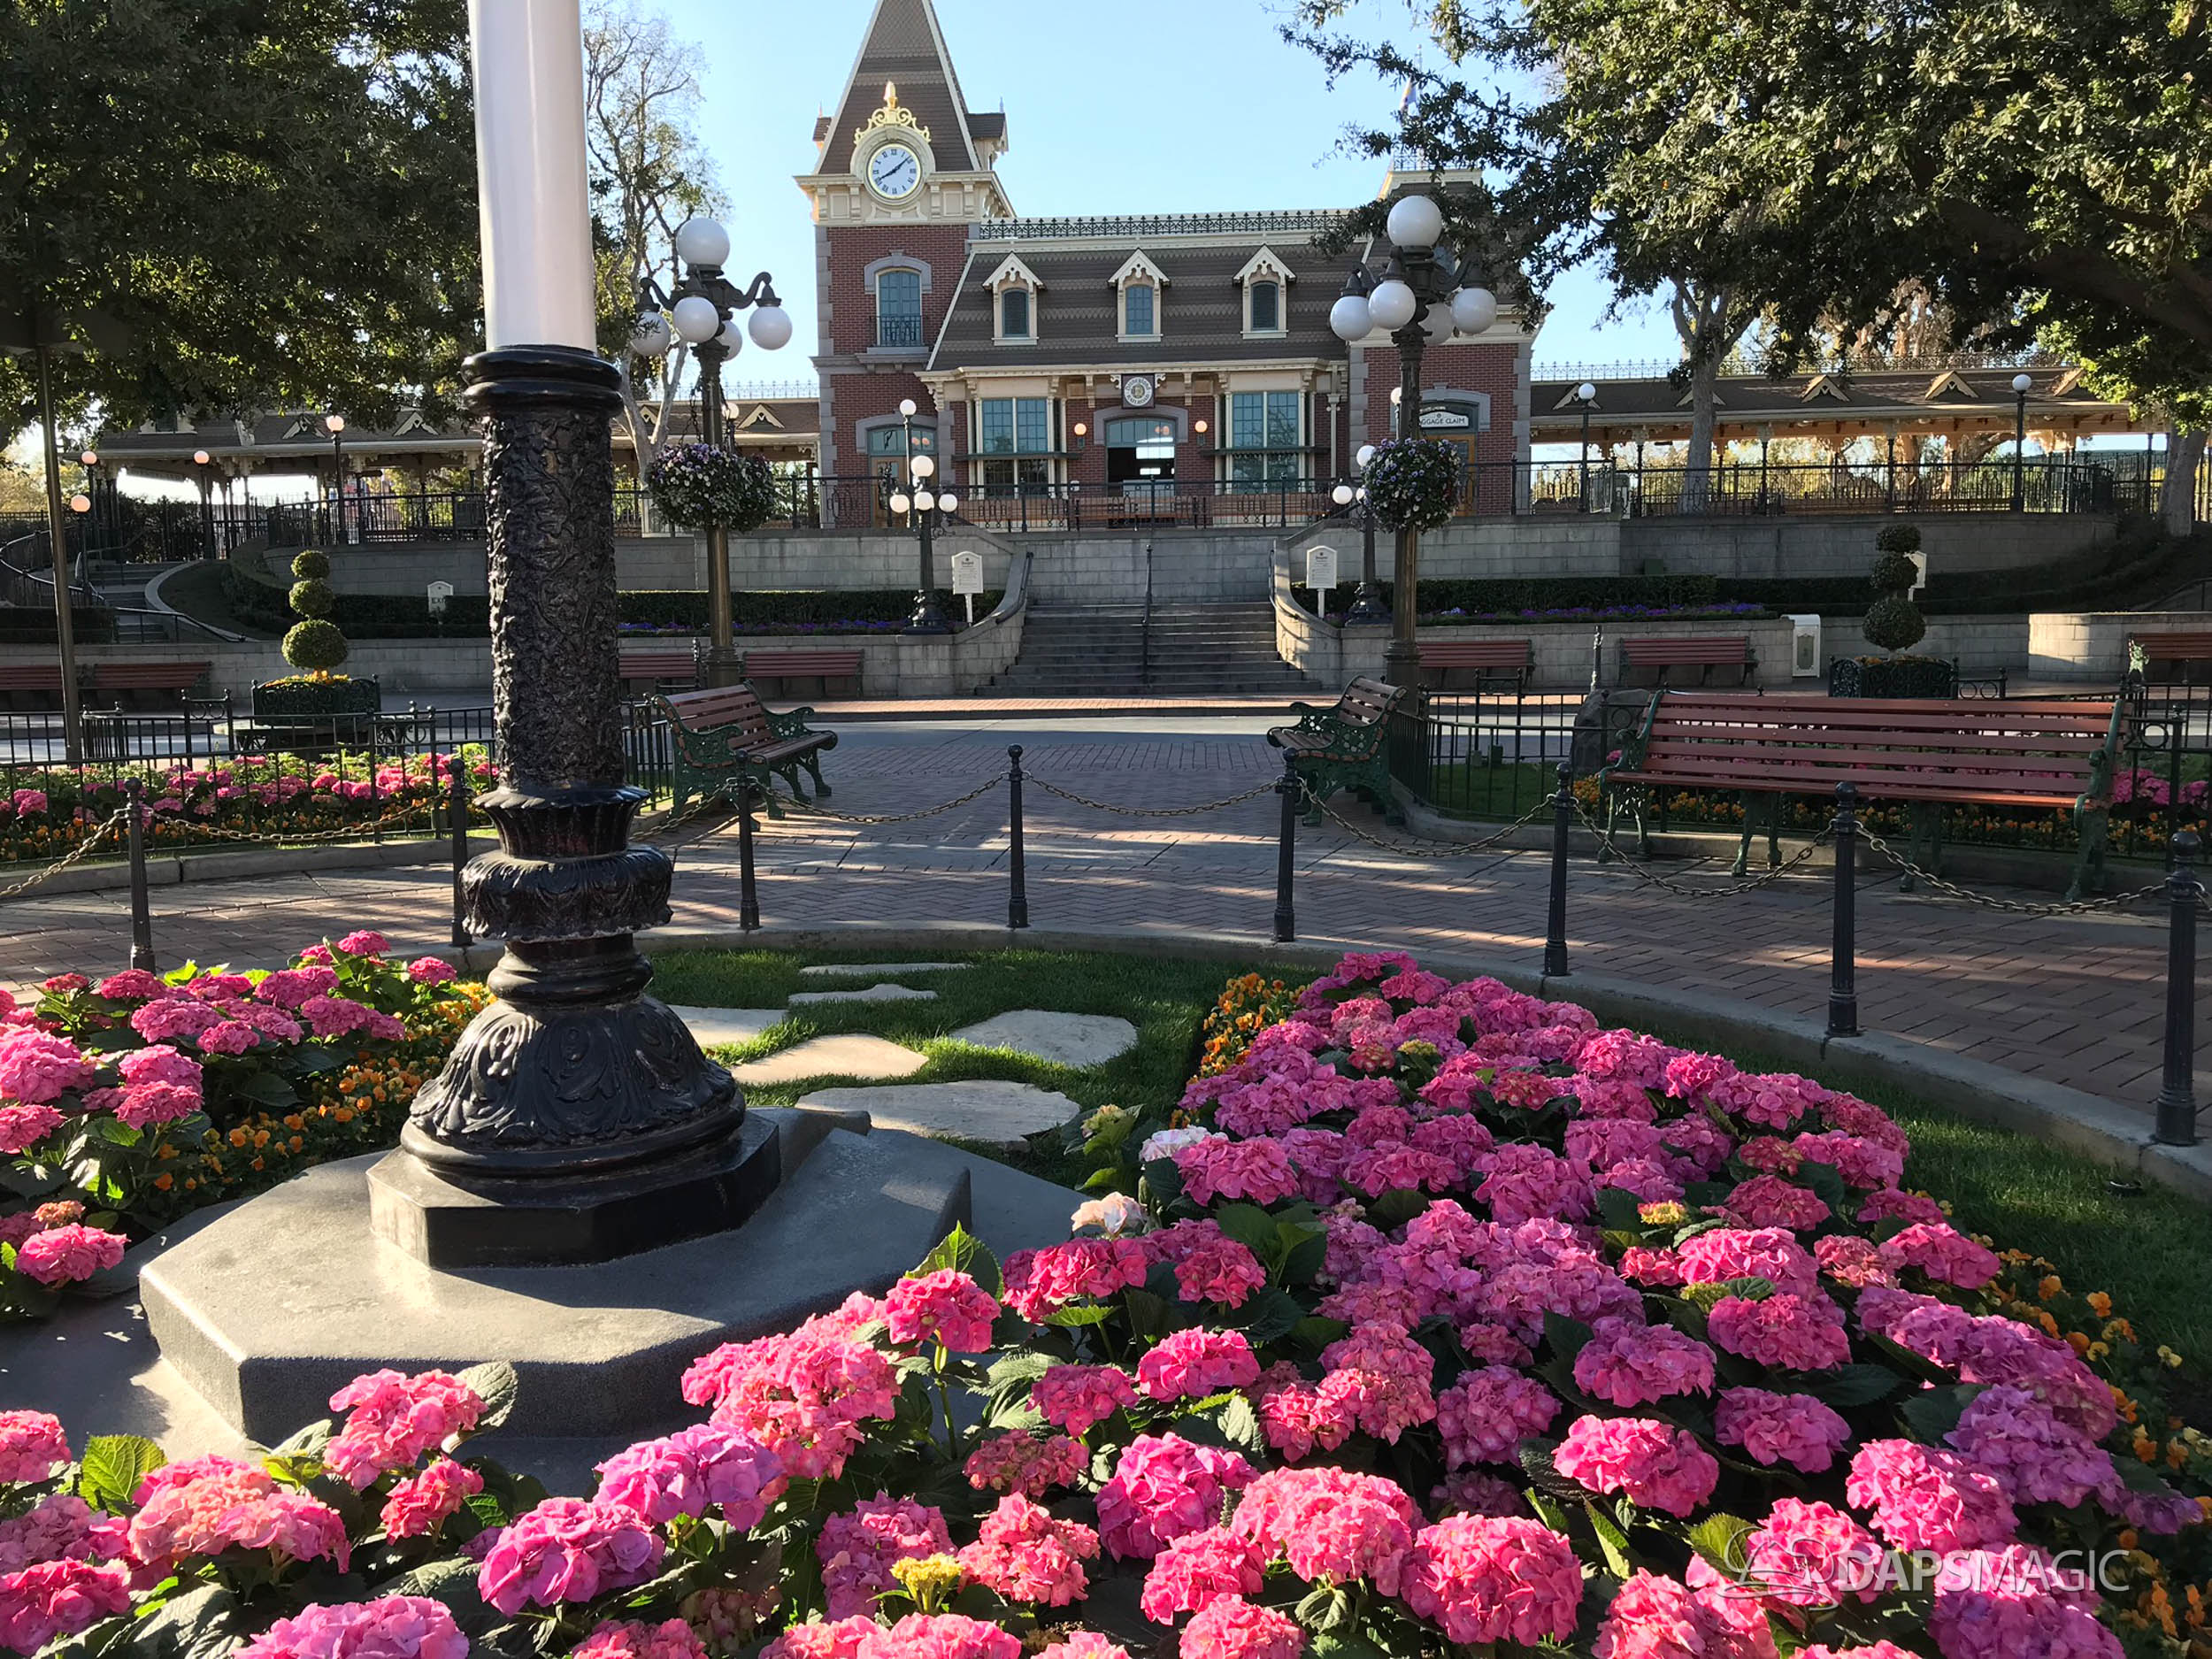 New Brick Around Streetcar Track Revealed as Town Square Walls Come Down at Disneyland